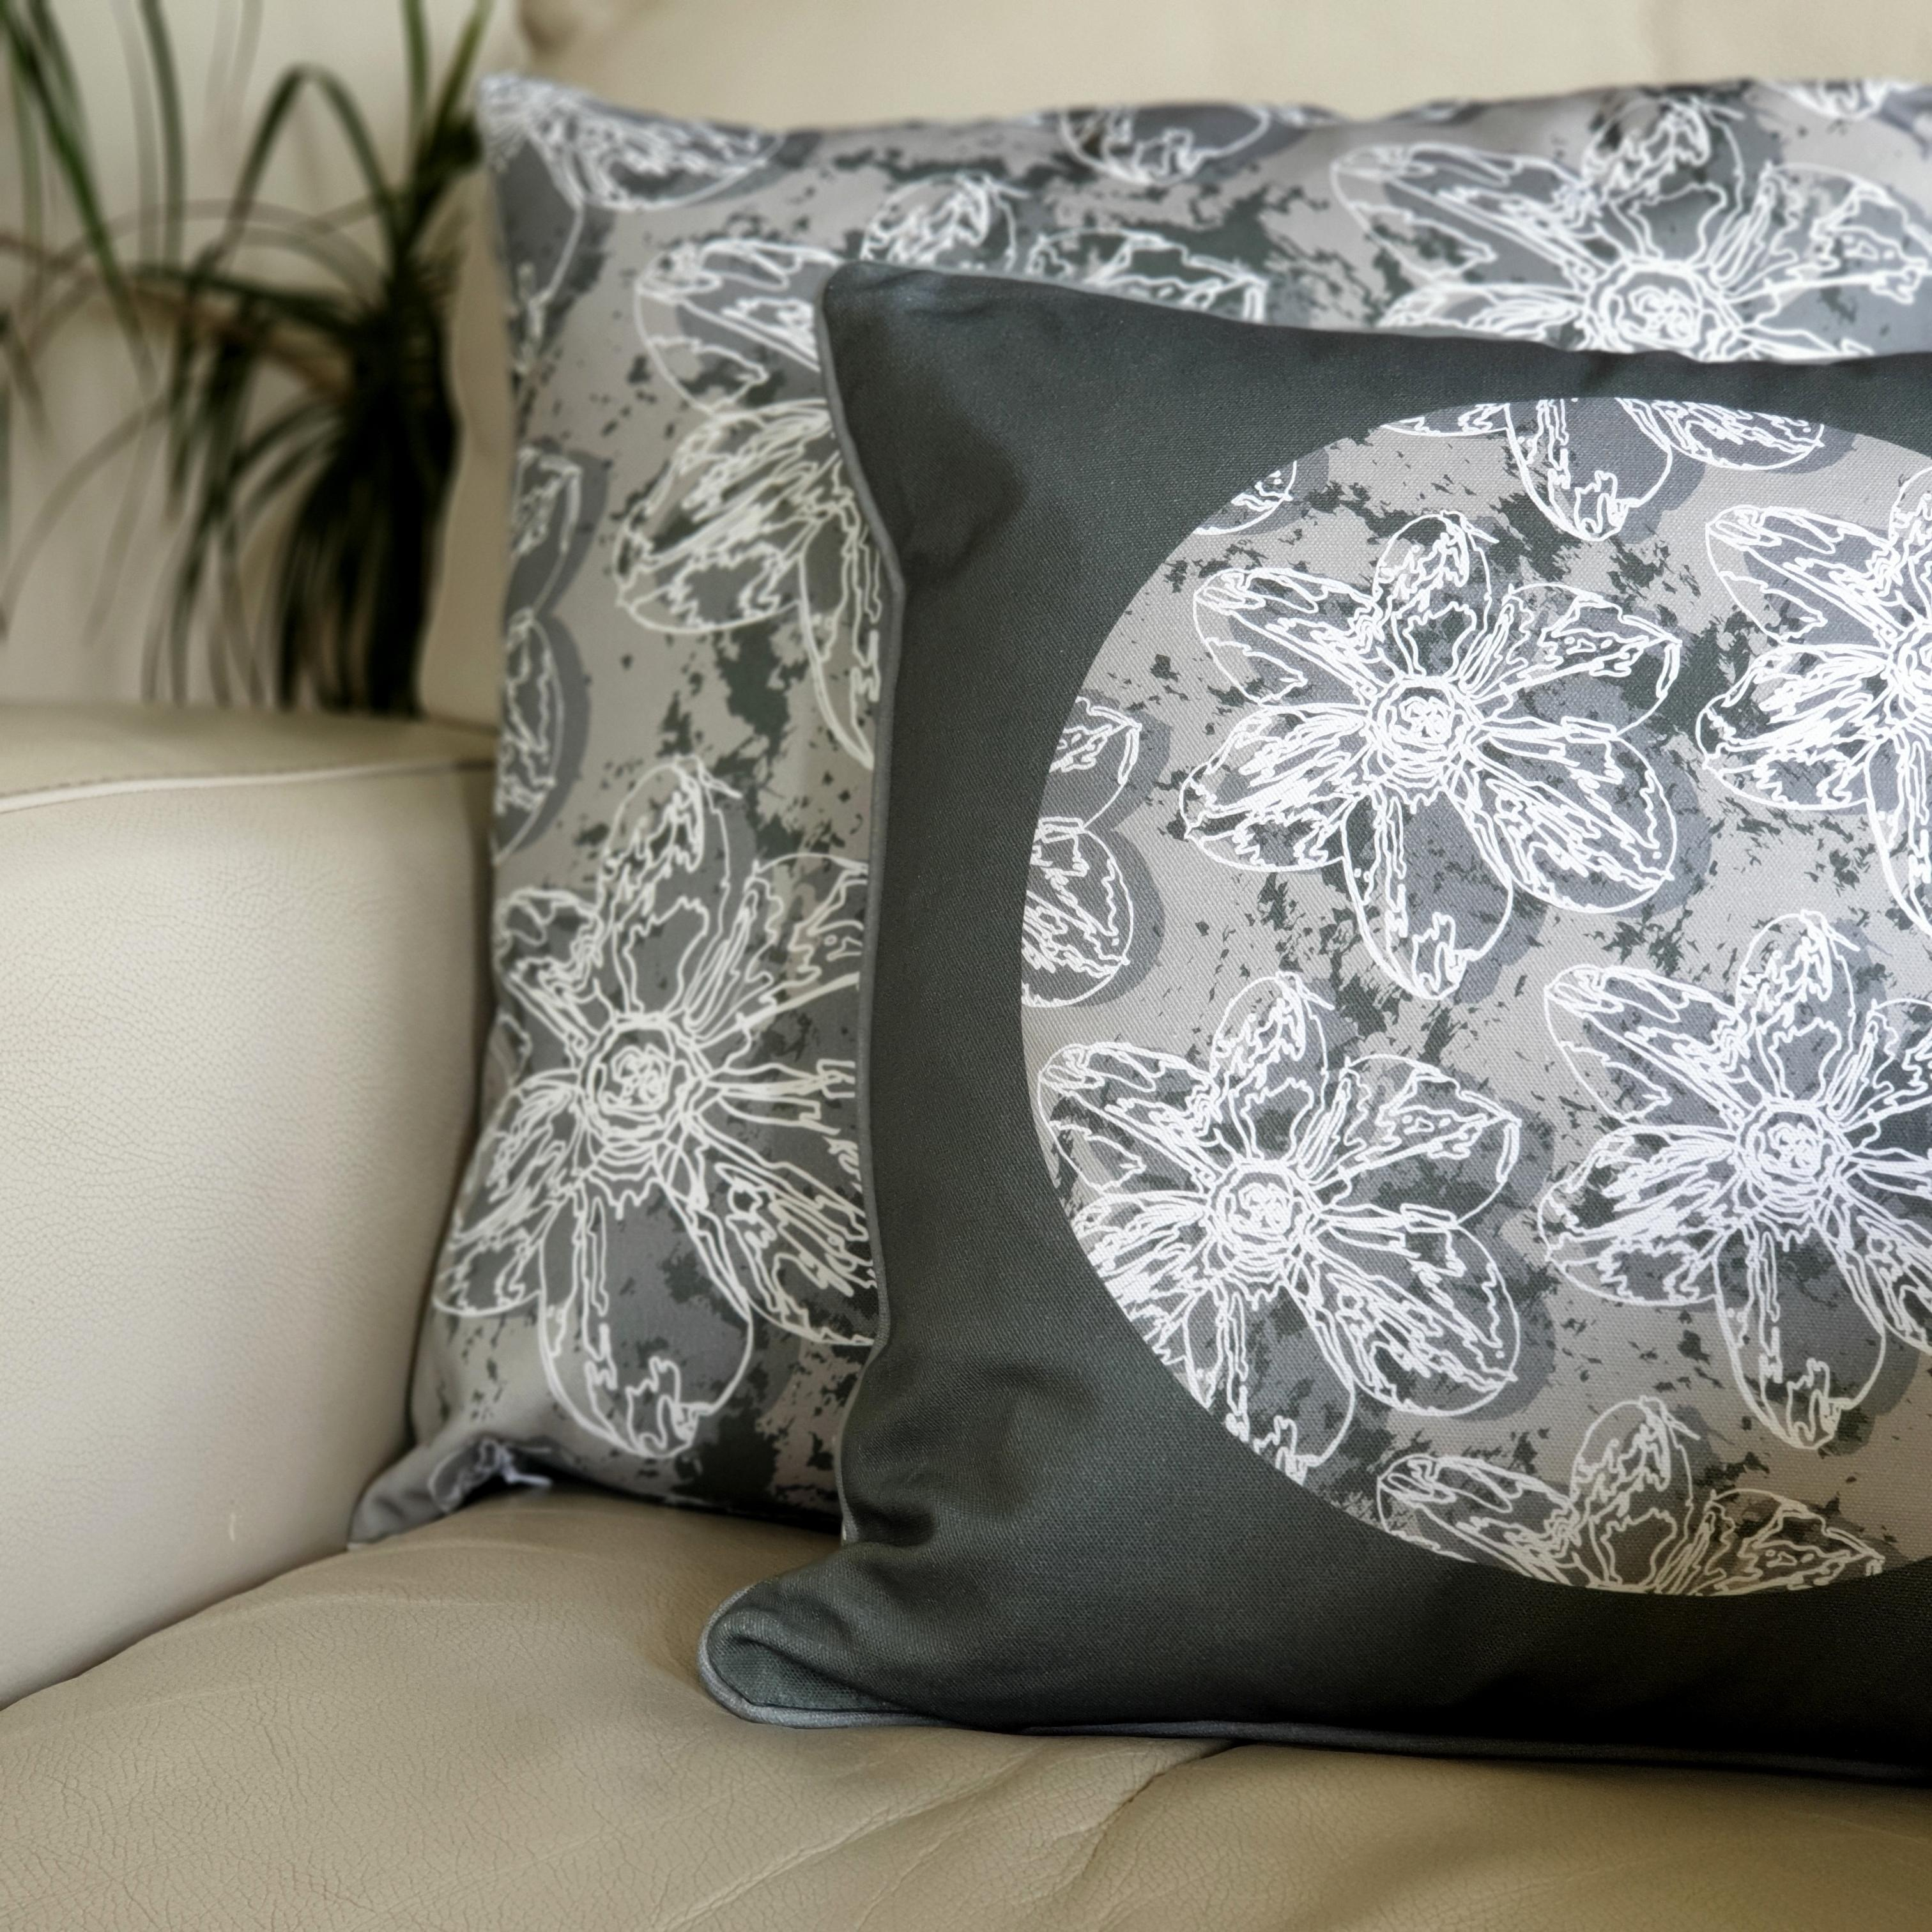 Double-sided 45cm square & 51cm square Flower Splash cushions, showing both sides, designed by thetinkan. Dark grey narcissus flower with white traced outline set within a grey background with charcoal grey paint splashes. Available with an optional luxury cushion inner pad. VIEW PRODUCT >>